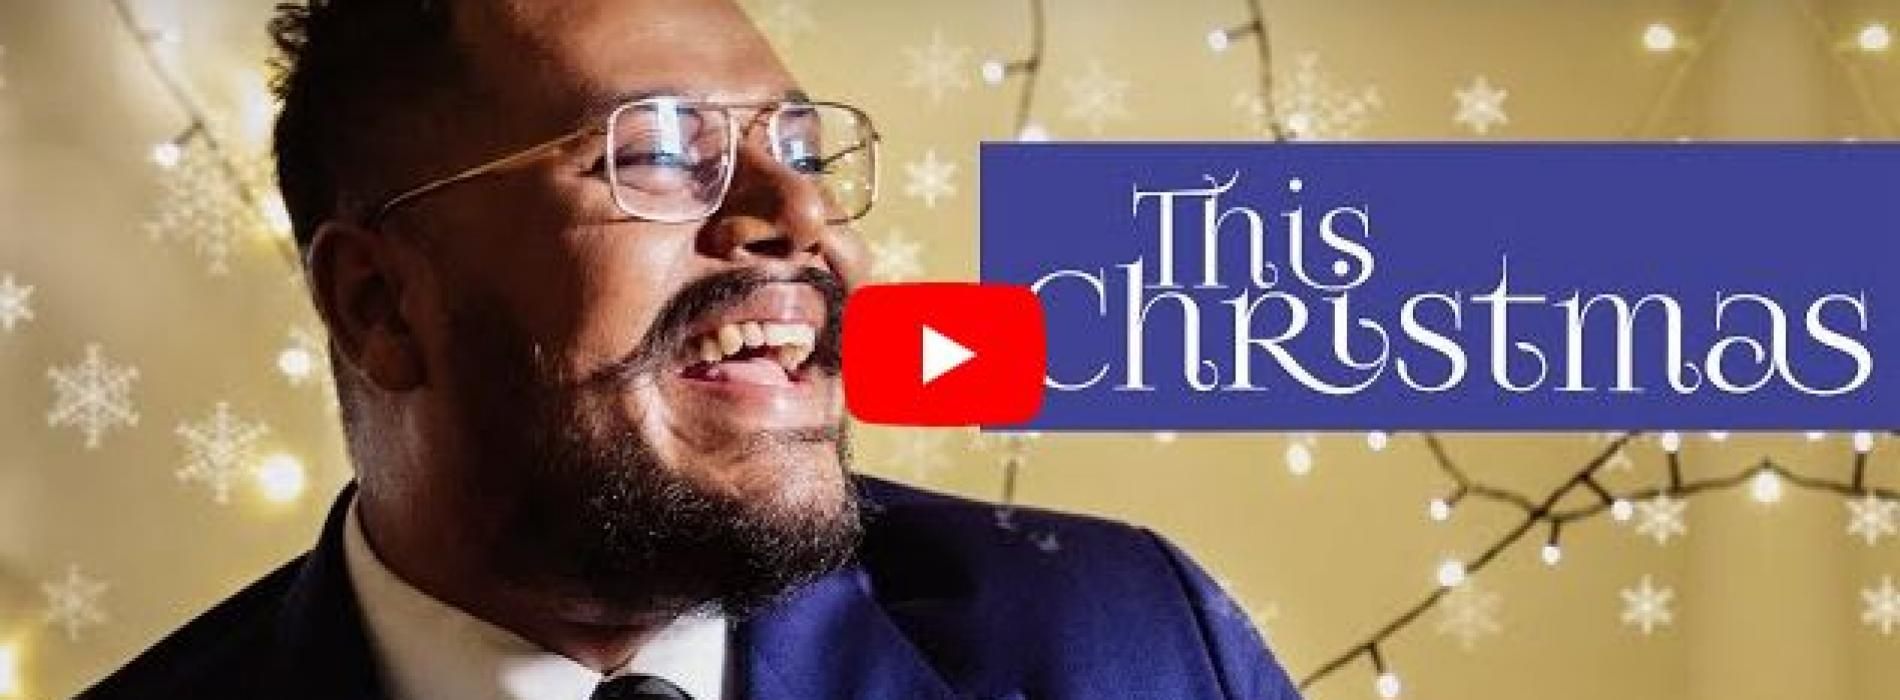 New Music : Have Yourself A Merry Little Christmas | Mary Did You Know Cover By Danu Innasithamby